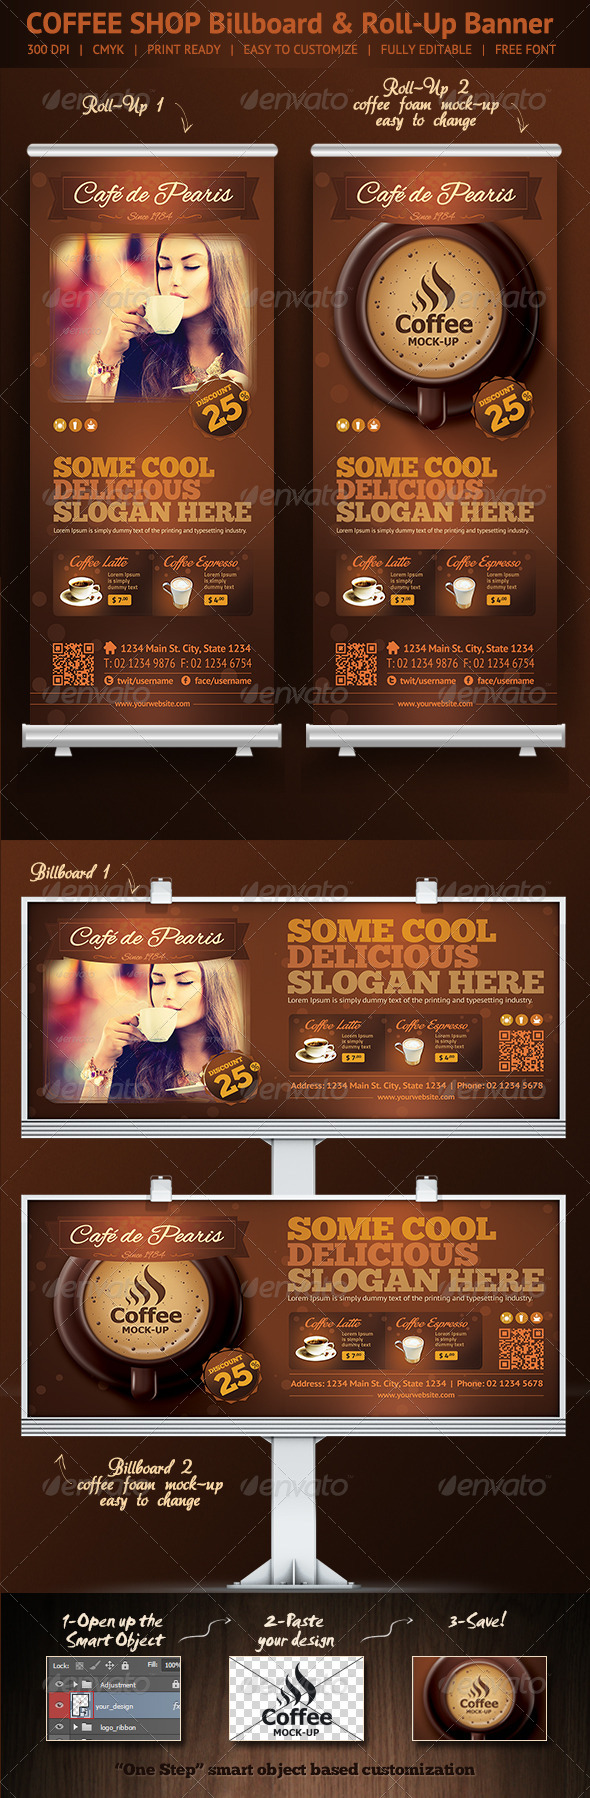 GraphicRiver Coffee Shop Roll-Up Banner & Billboard Template 6609019